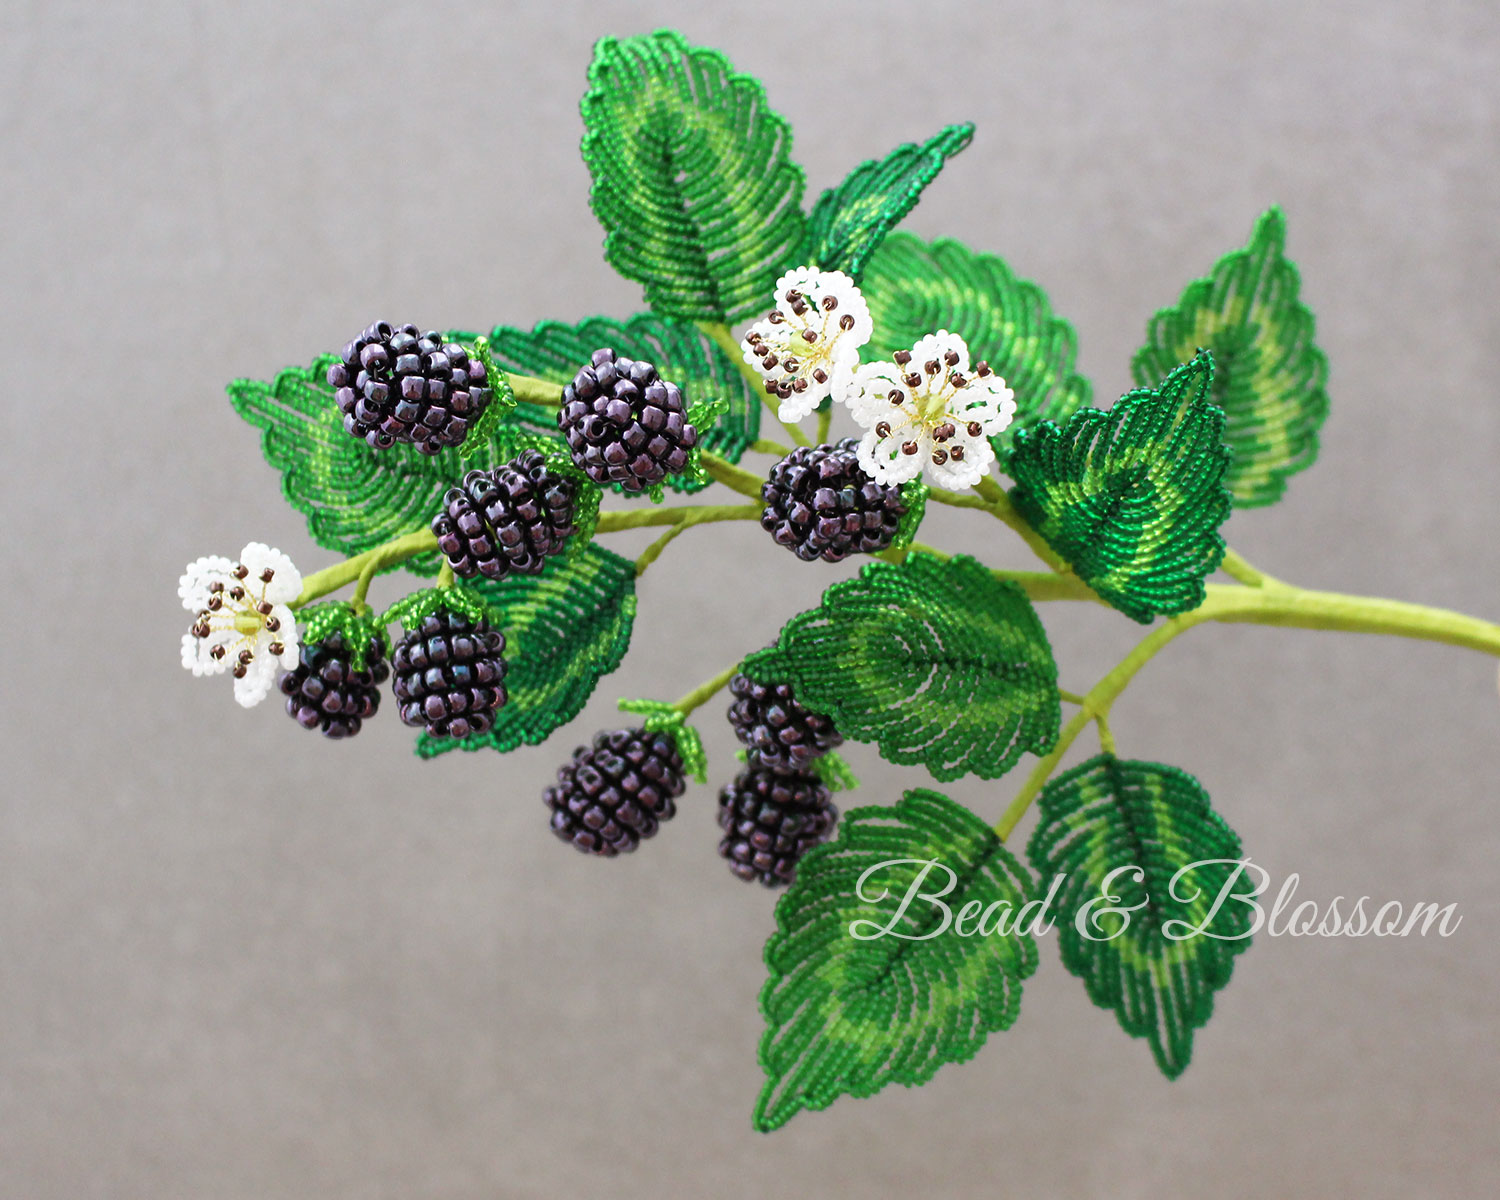 French Beaded Blackberry branch by Lauren Harpster and Suzanne Steffenson